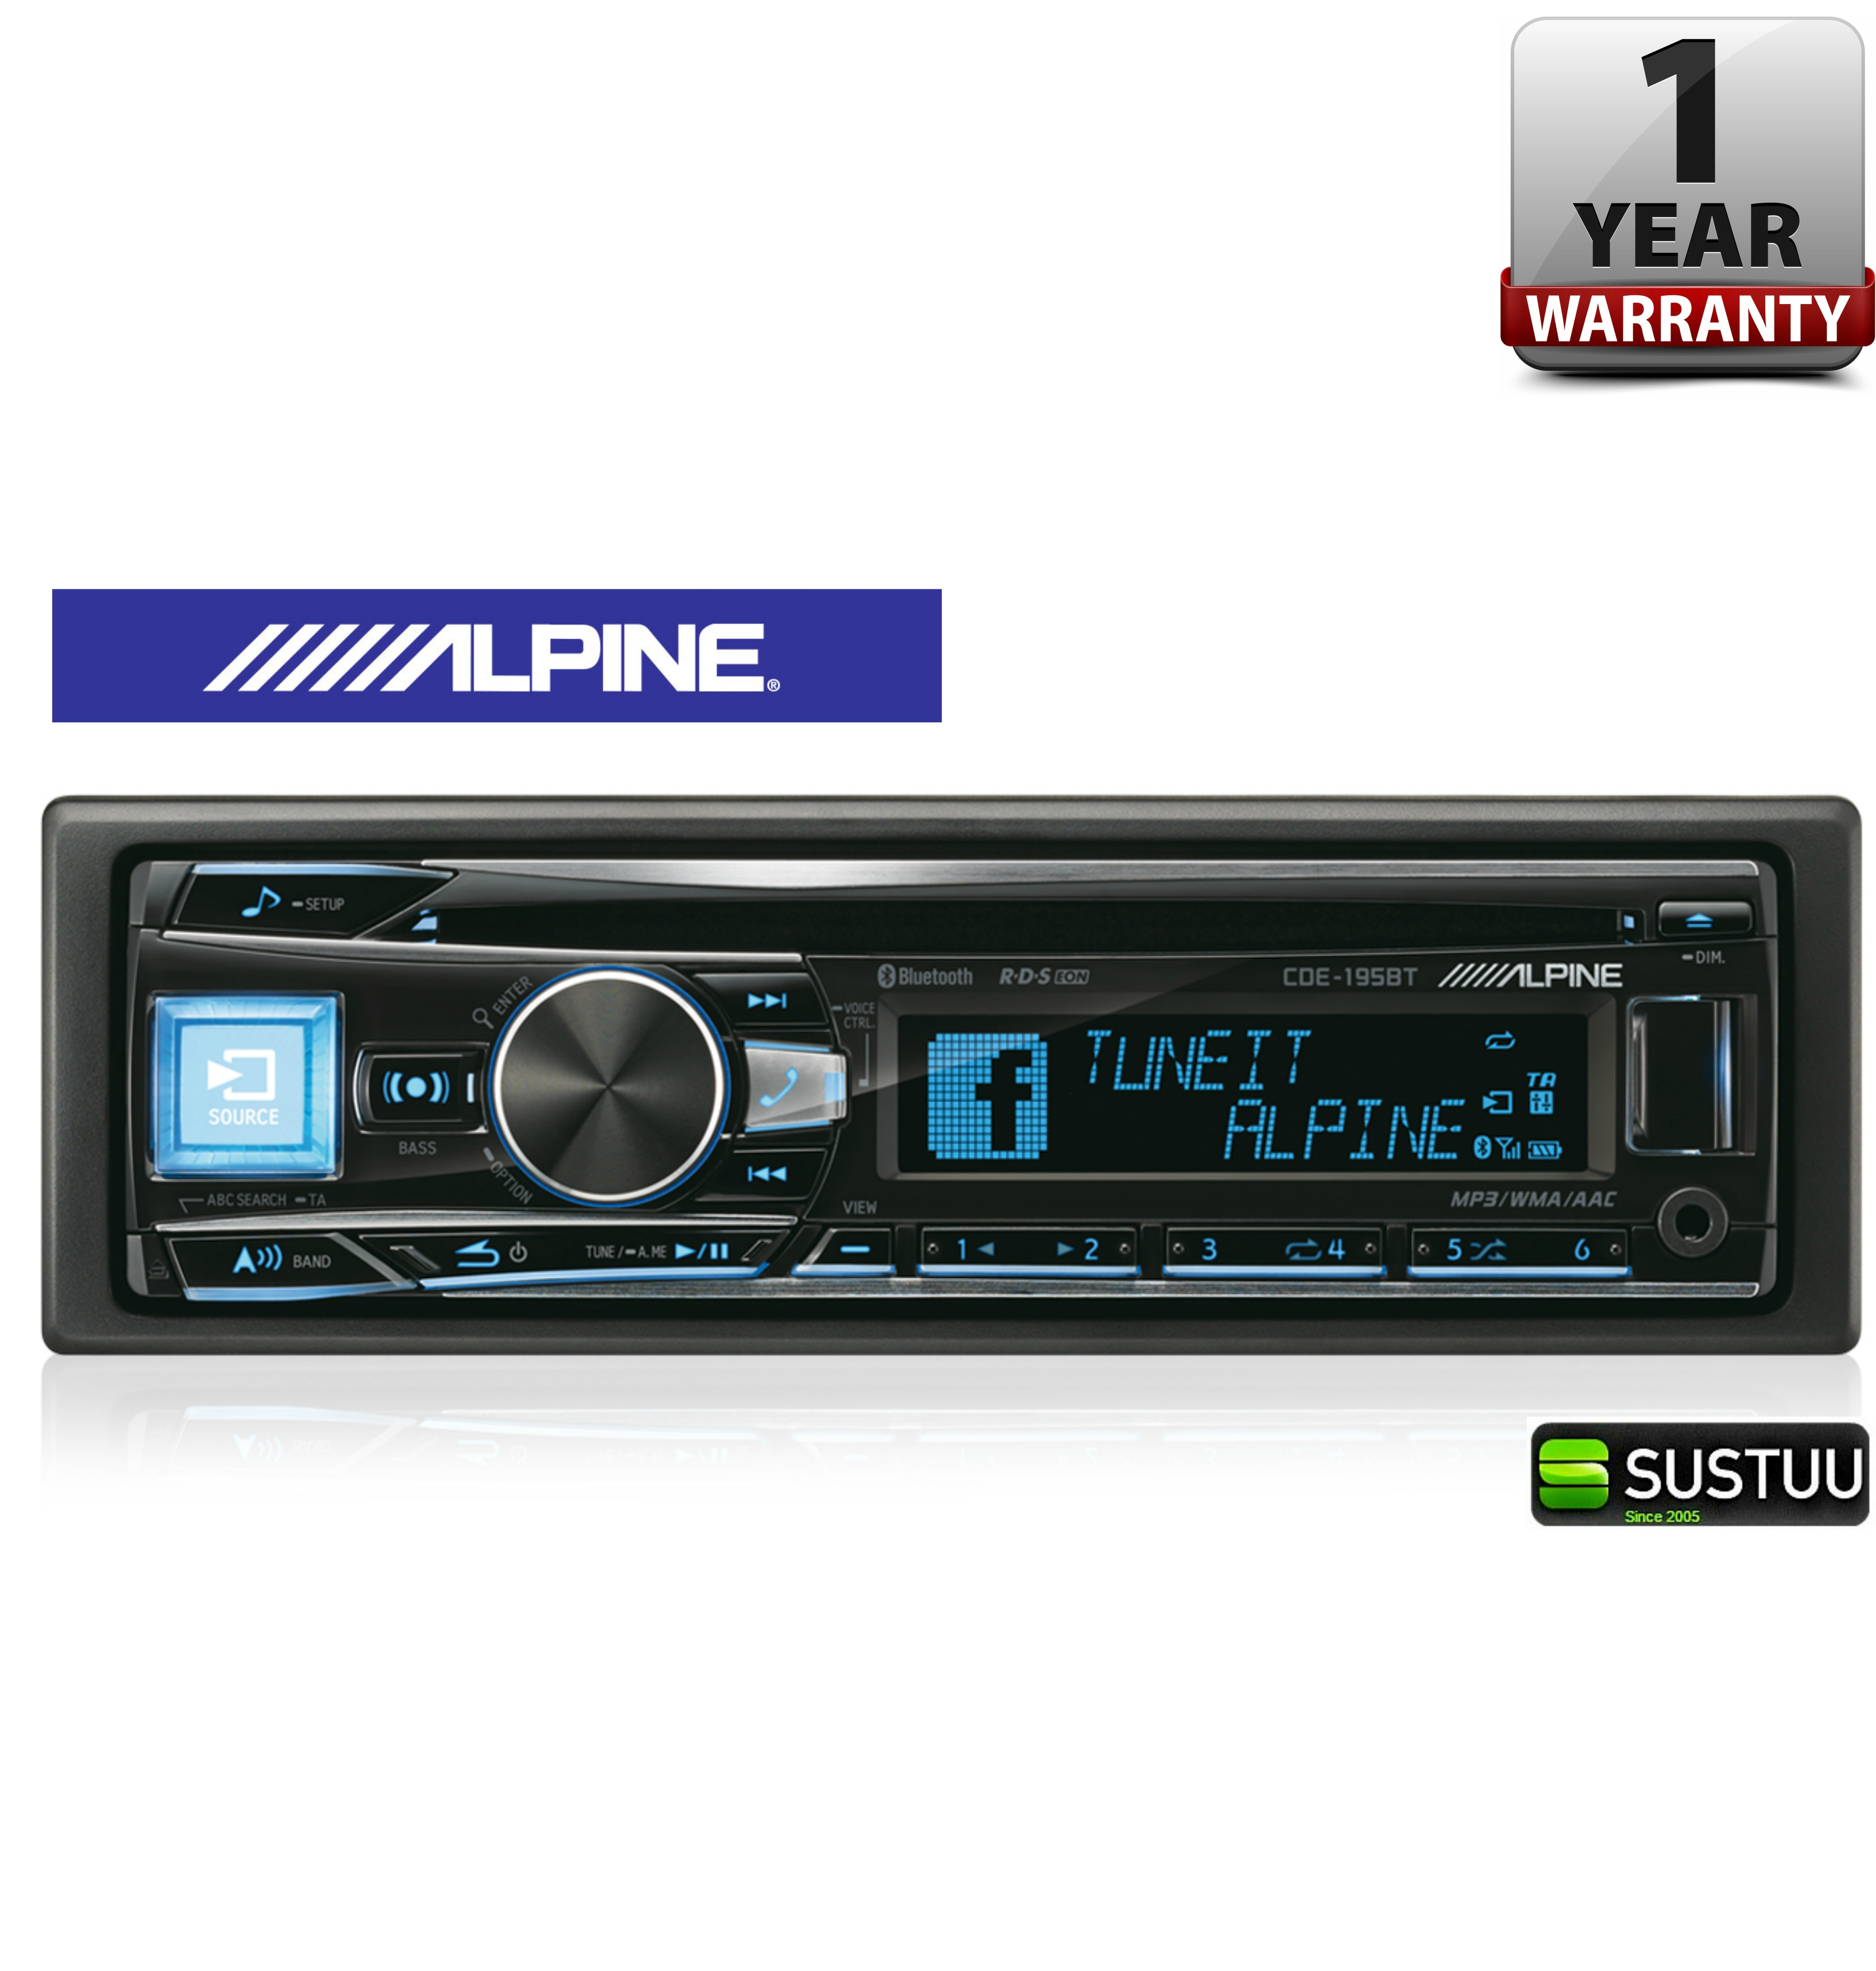 new alpine cde 195bt car stereo fm mw lw cd aux usb. Black Bedroom Furniture Sets. Home Design Ideas